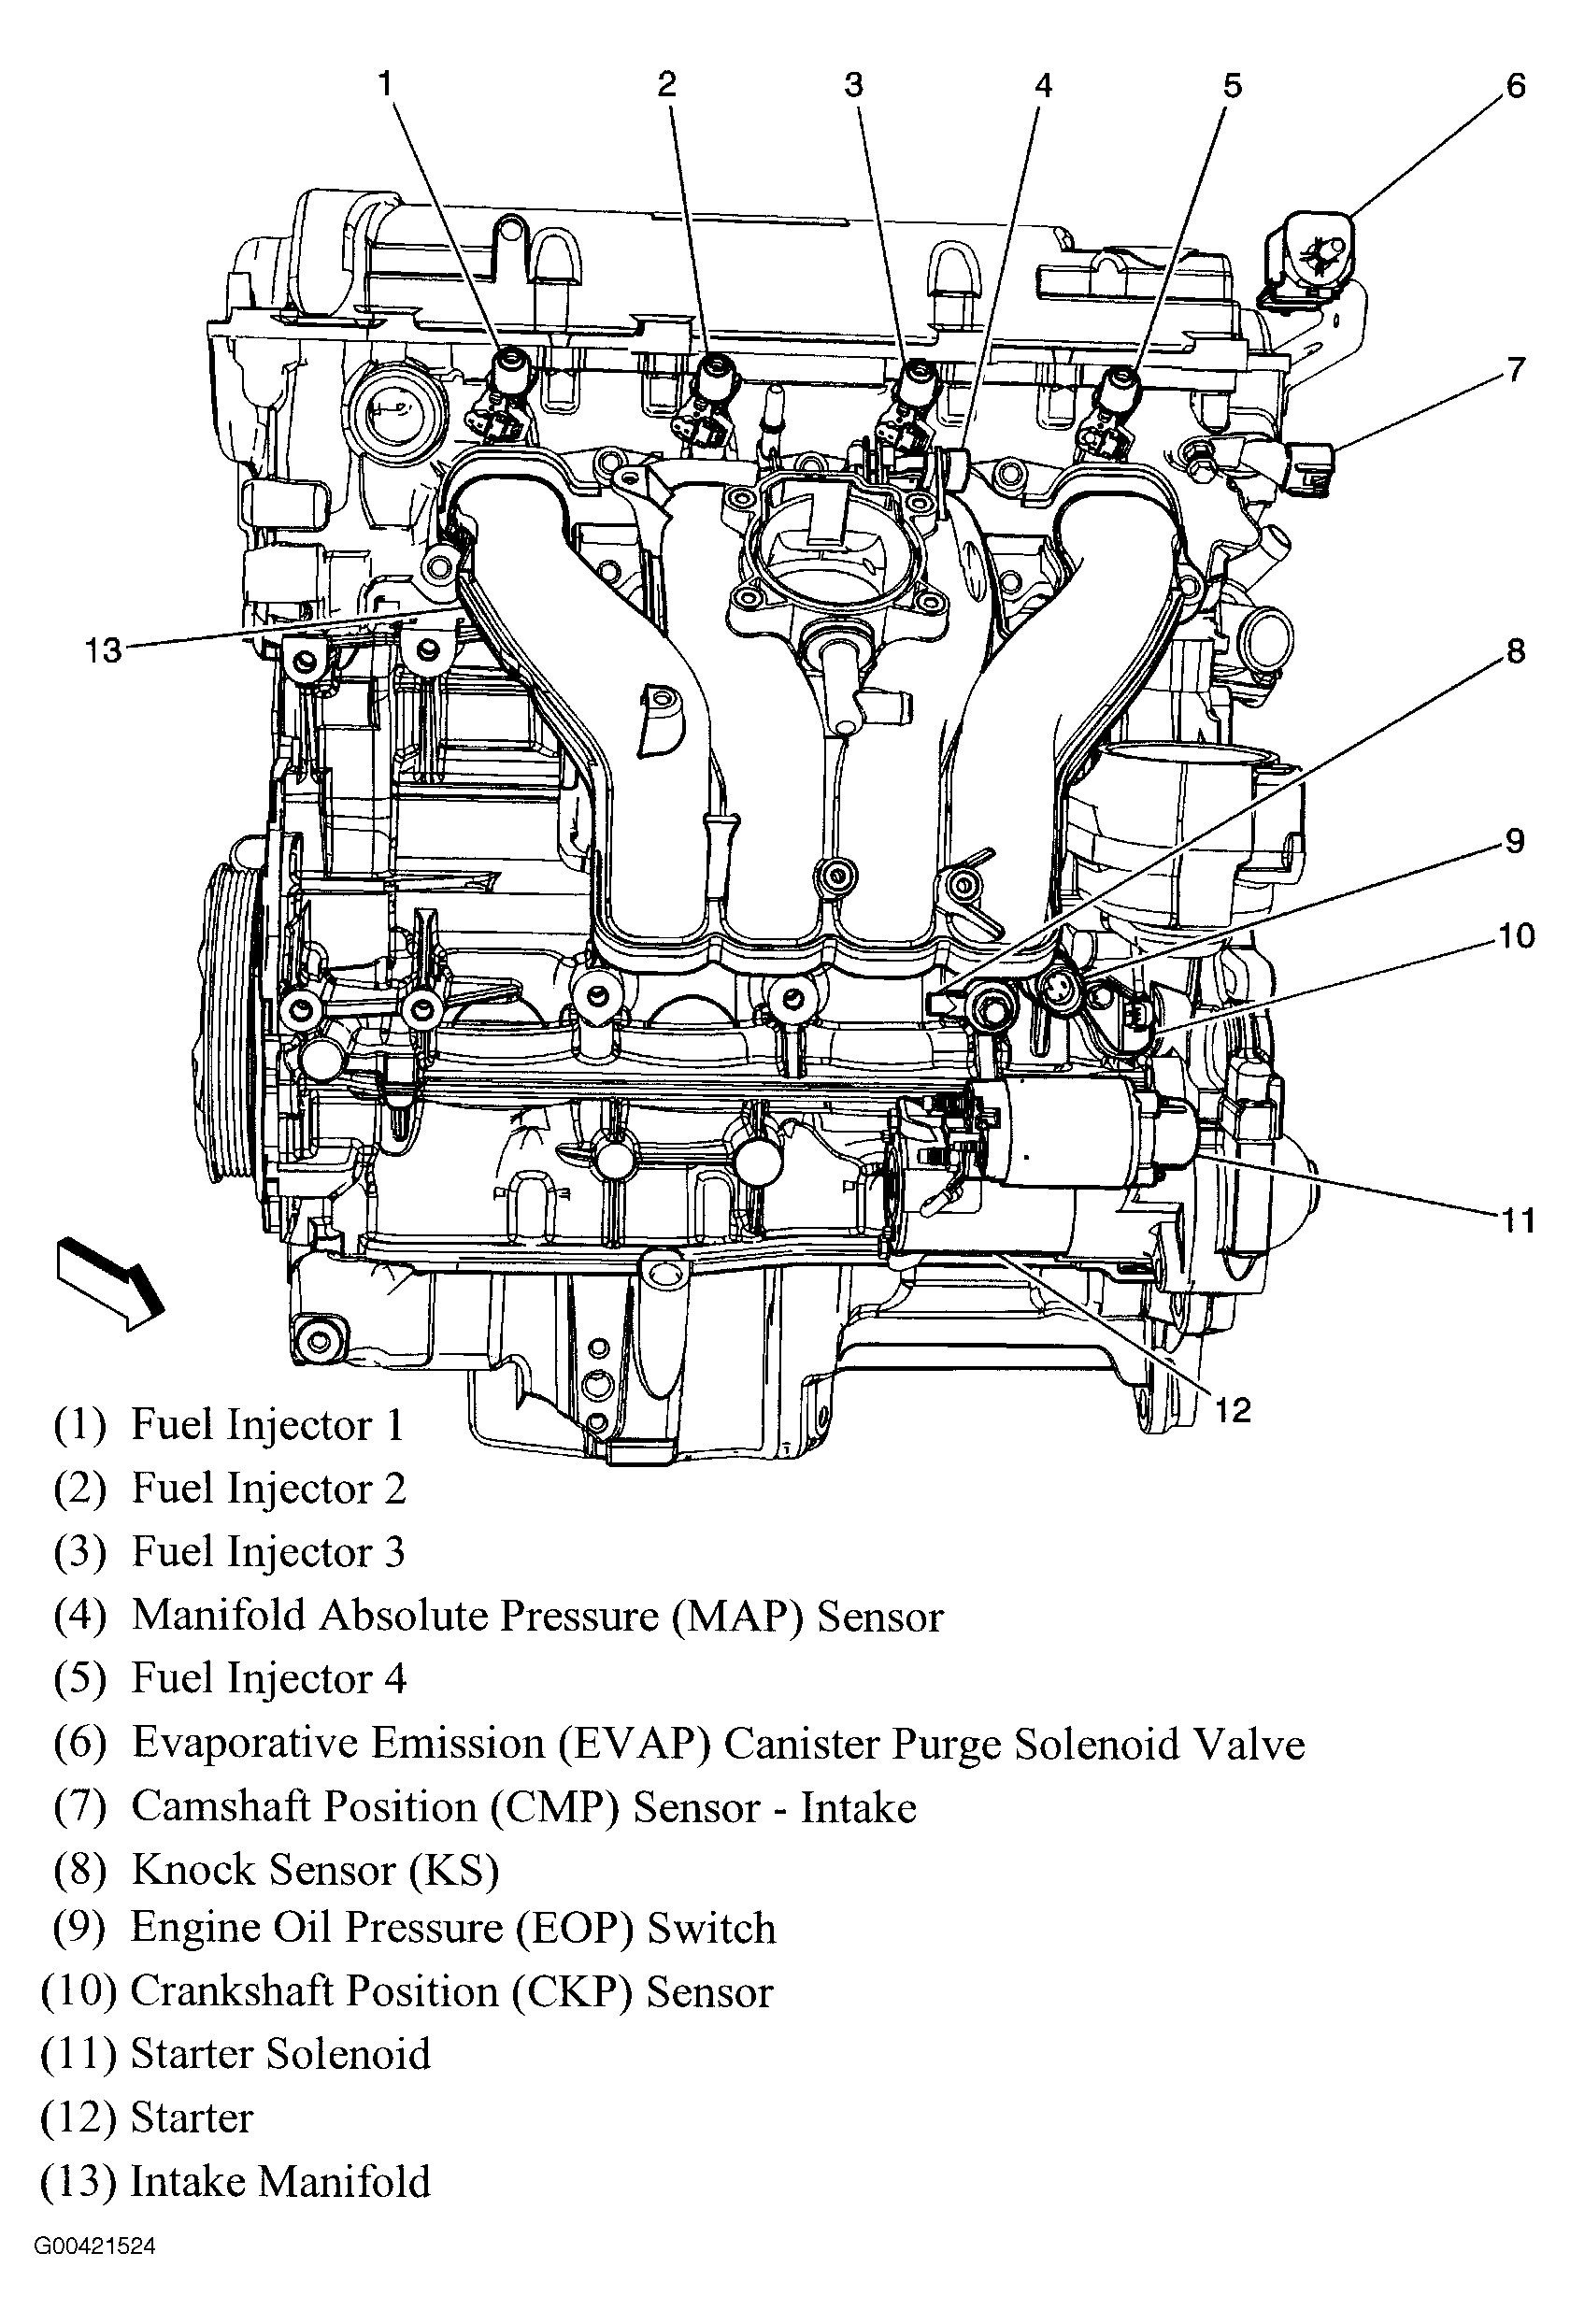 4 Cylinder Engine Diagram Simple Not Lossing Wiring Inline 2 Liter Todays Rh 10 13 1813weddingbarn Com 24